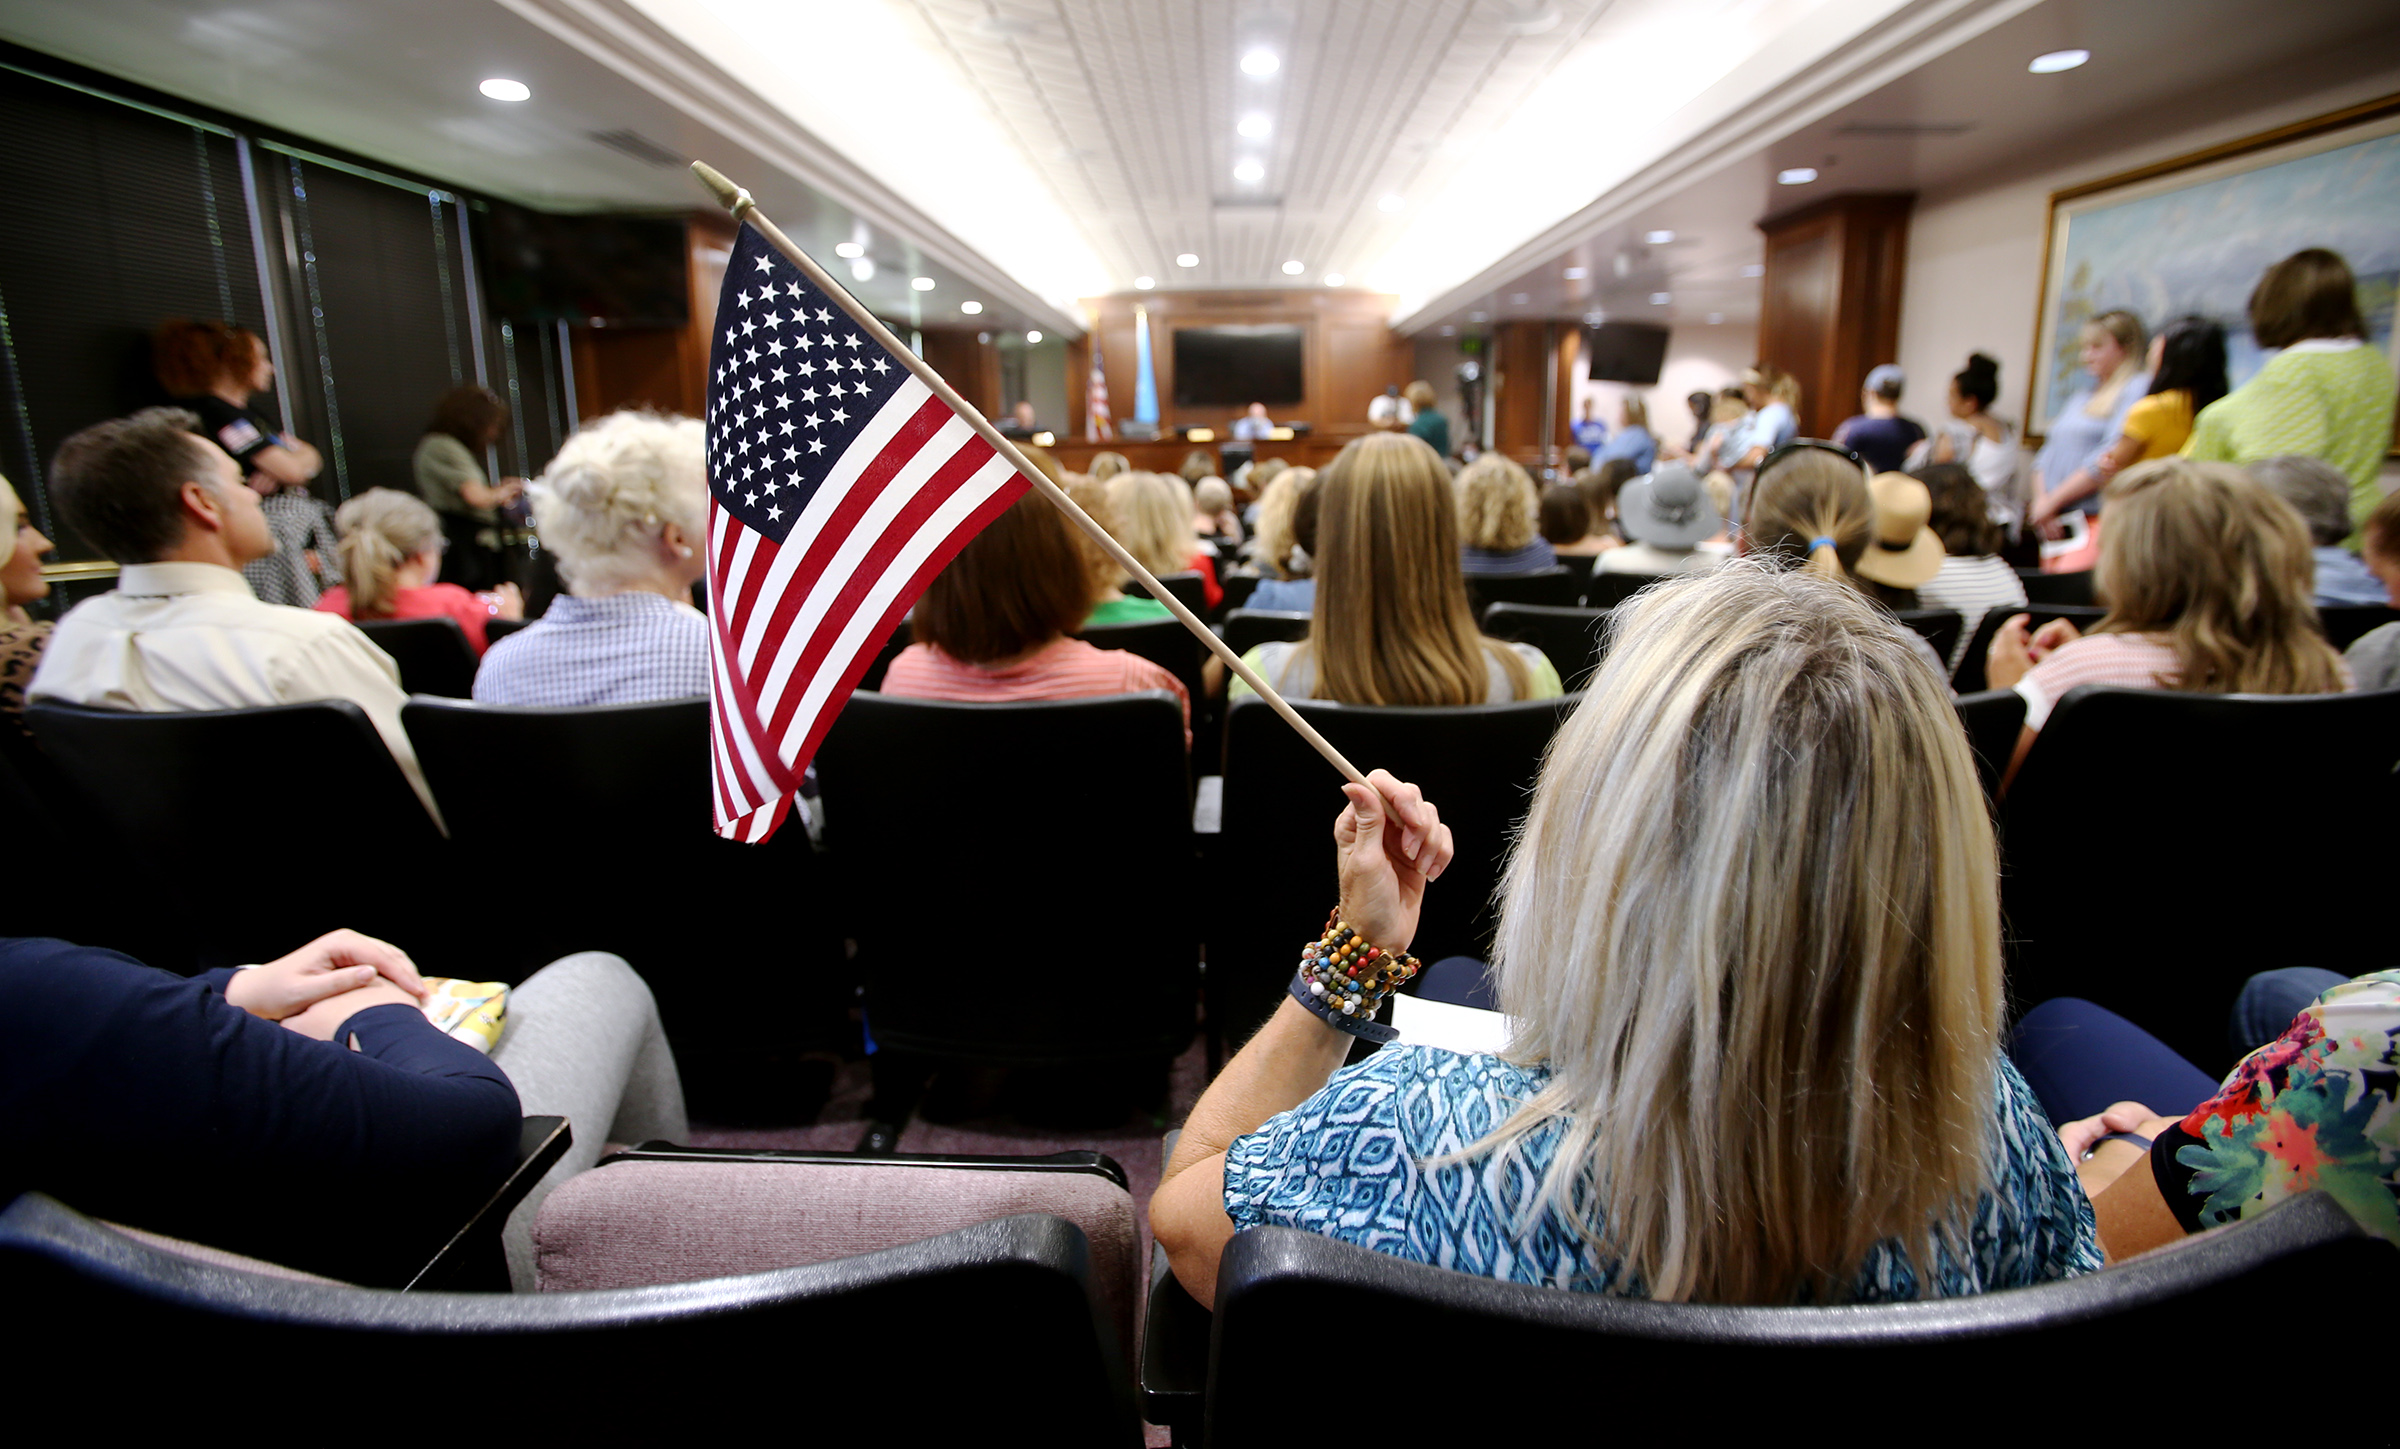 A woman holds an American flag during a Utah County Commission meeting.